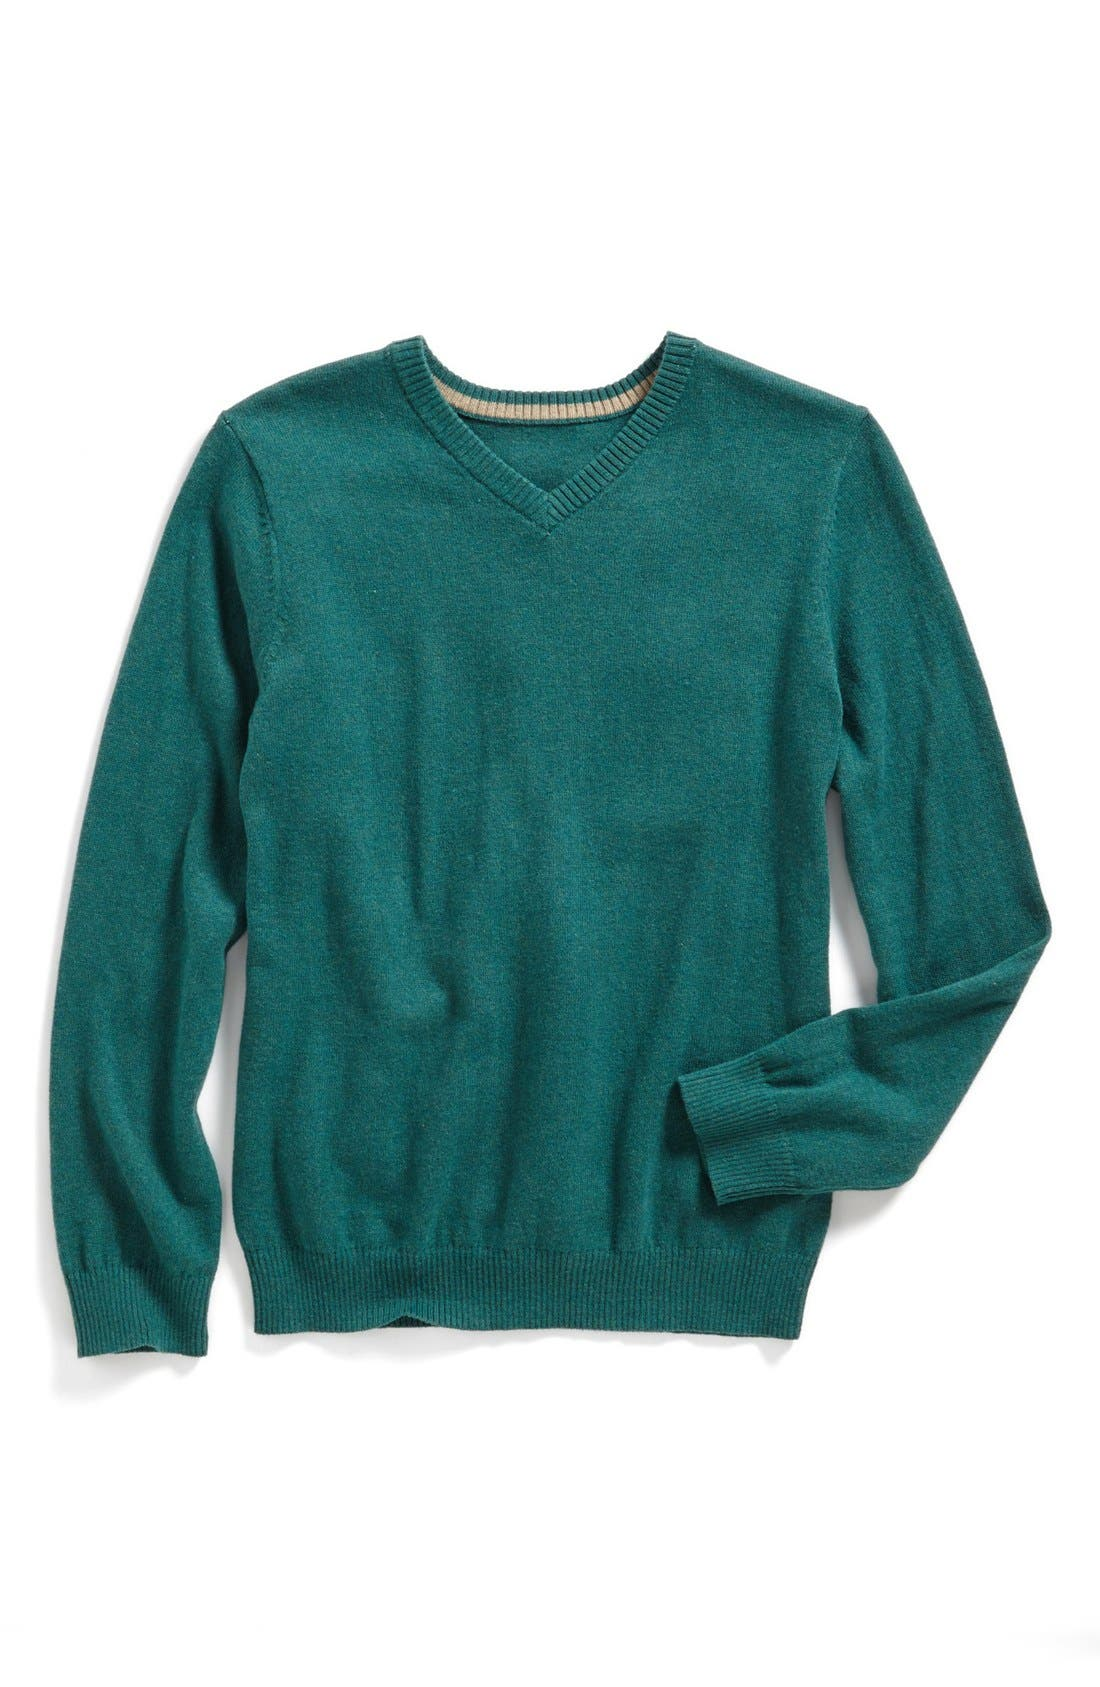 Main Image - Tucker + Tate 'Atticus' Cotton & Cashmere Sweater (Little Boys)